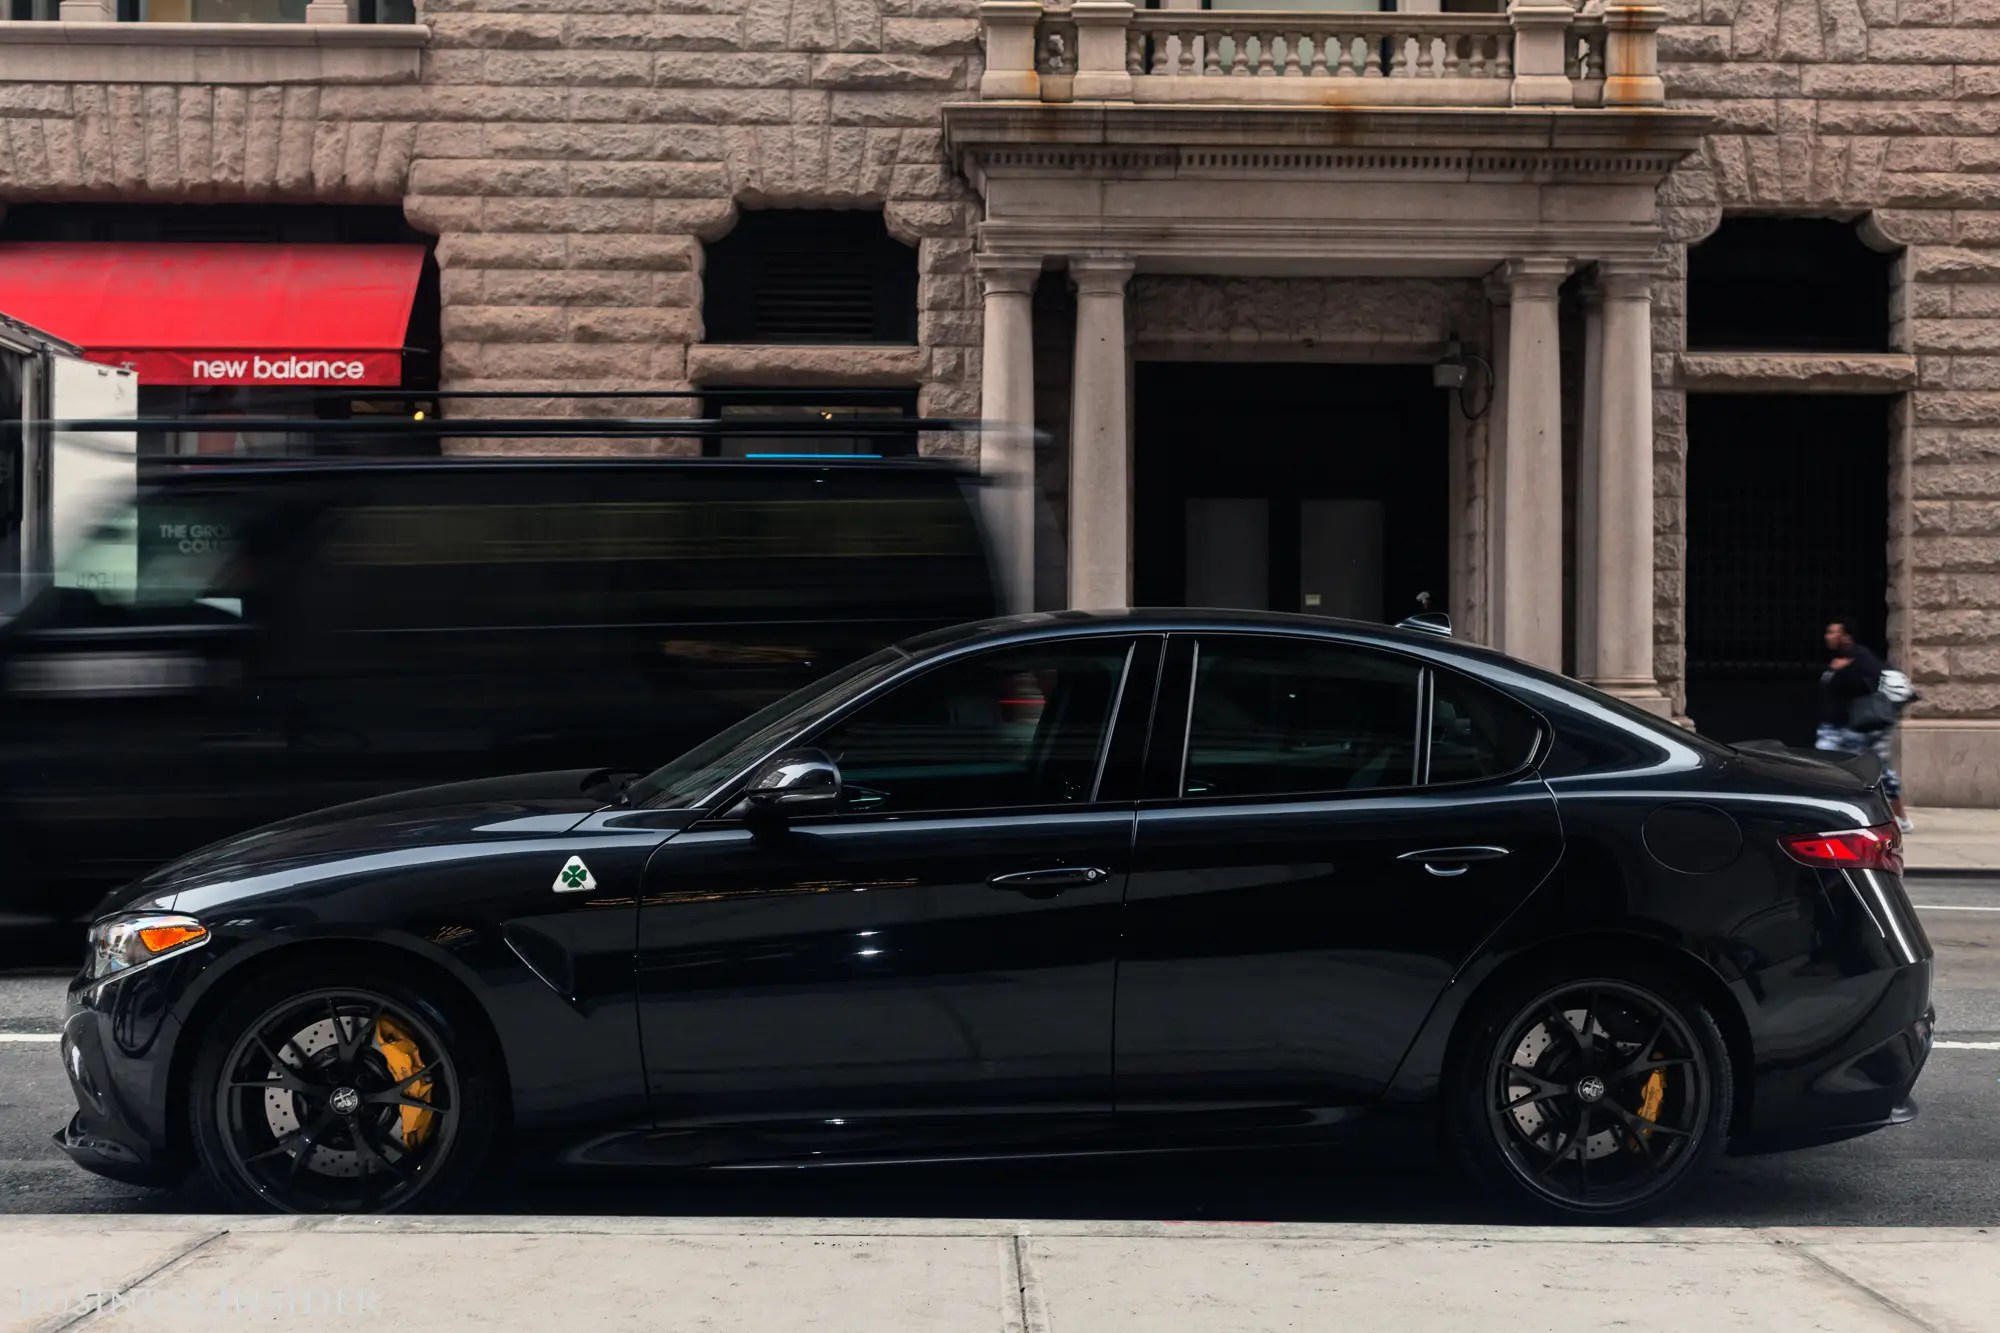 It's a handsome ride, with just enough Italian panache to make it stand apart from the BMWs and Audis of the world. The roof is carbon fiber, too.